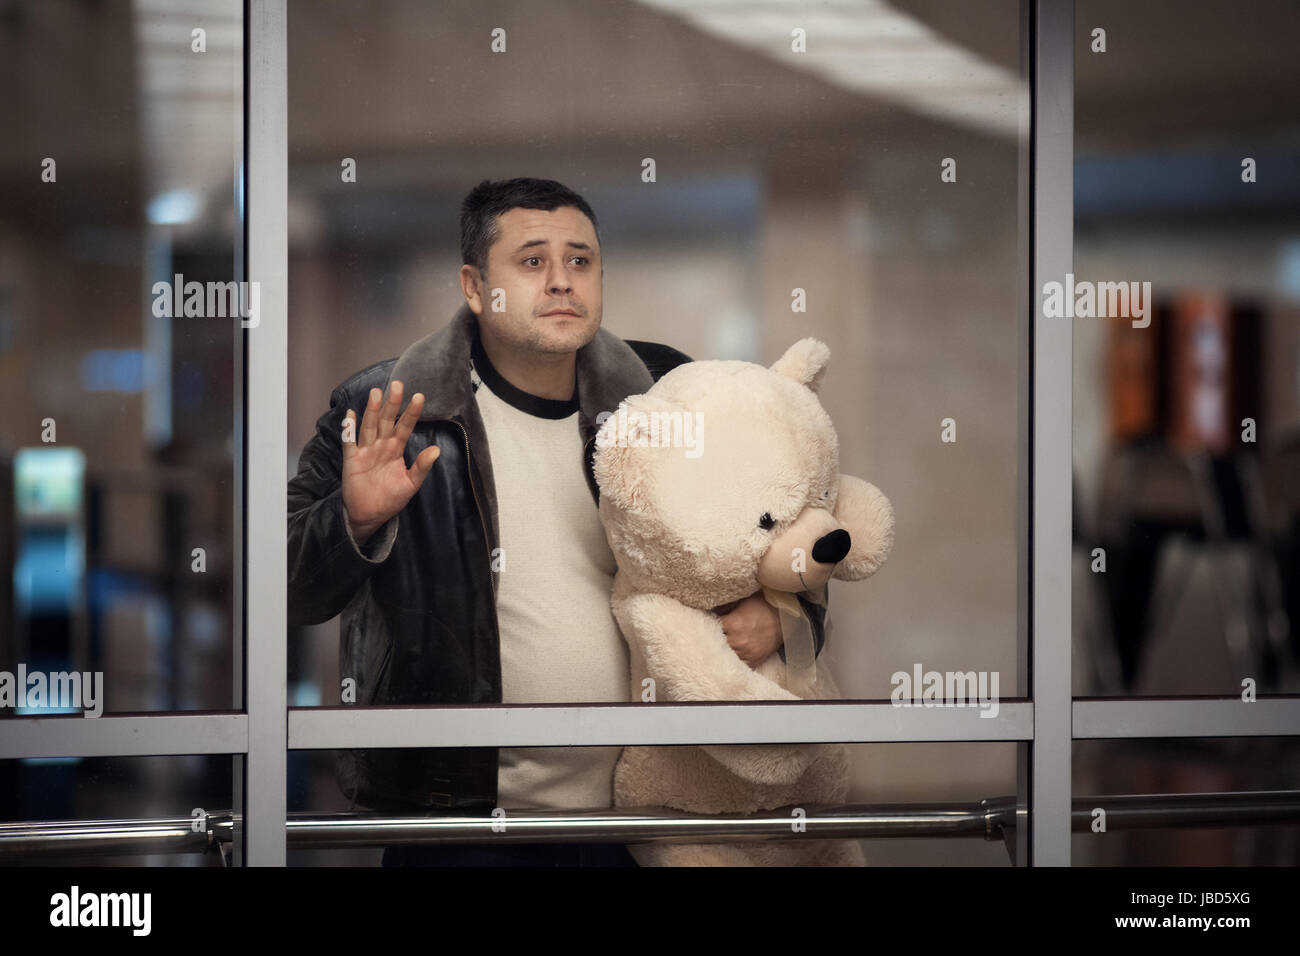 Man is holding a toy bear and looking sadly into the distance. He says goodbye. - Stock Image